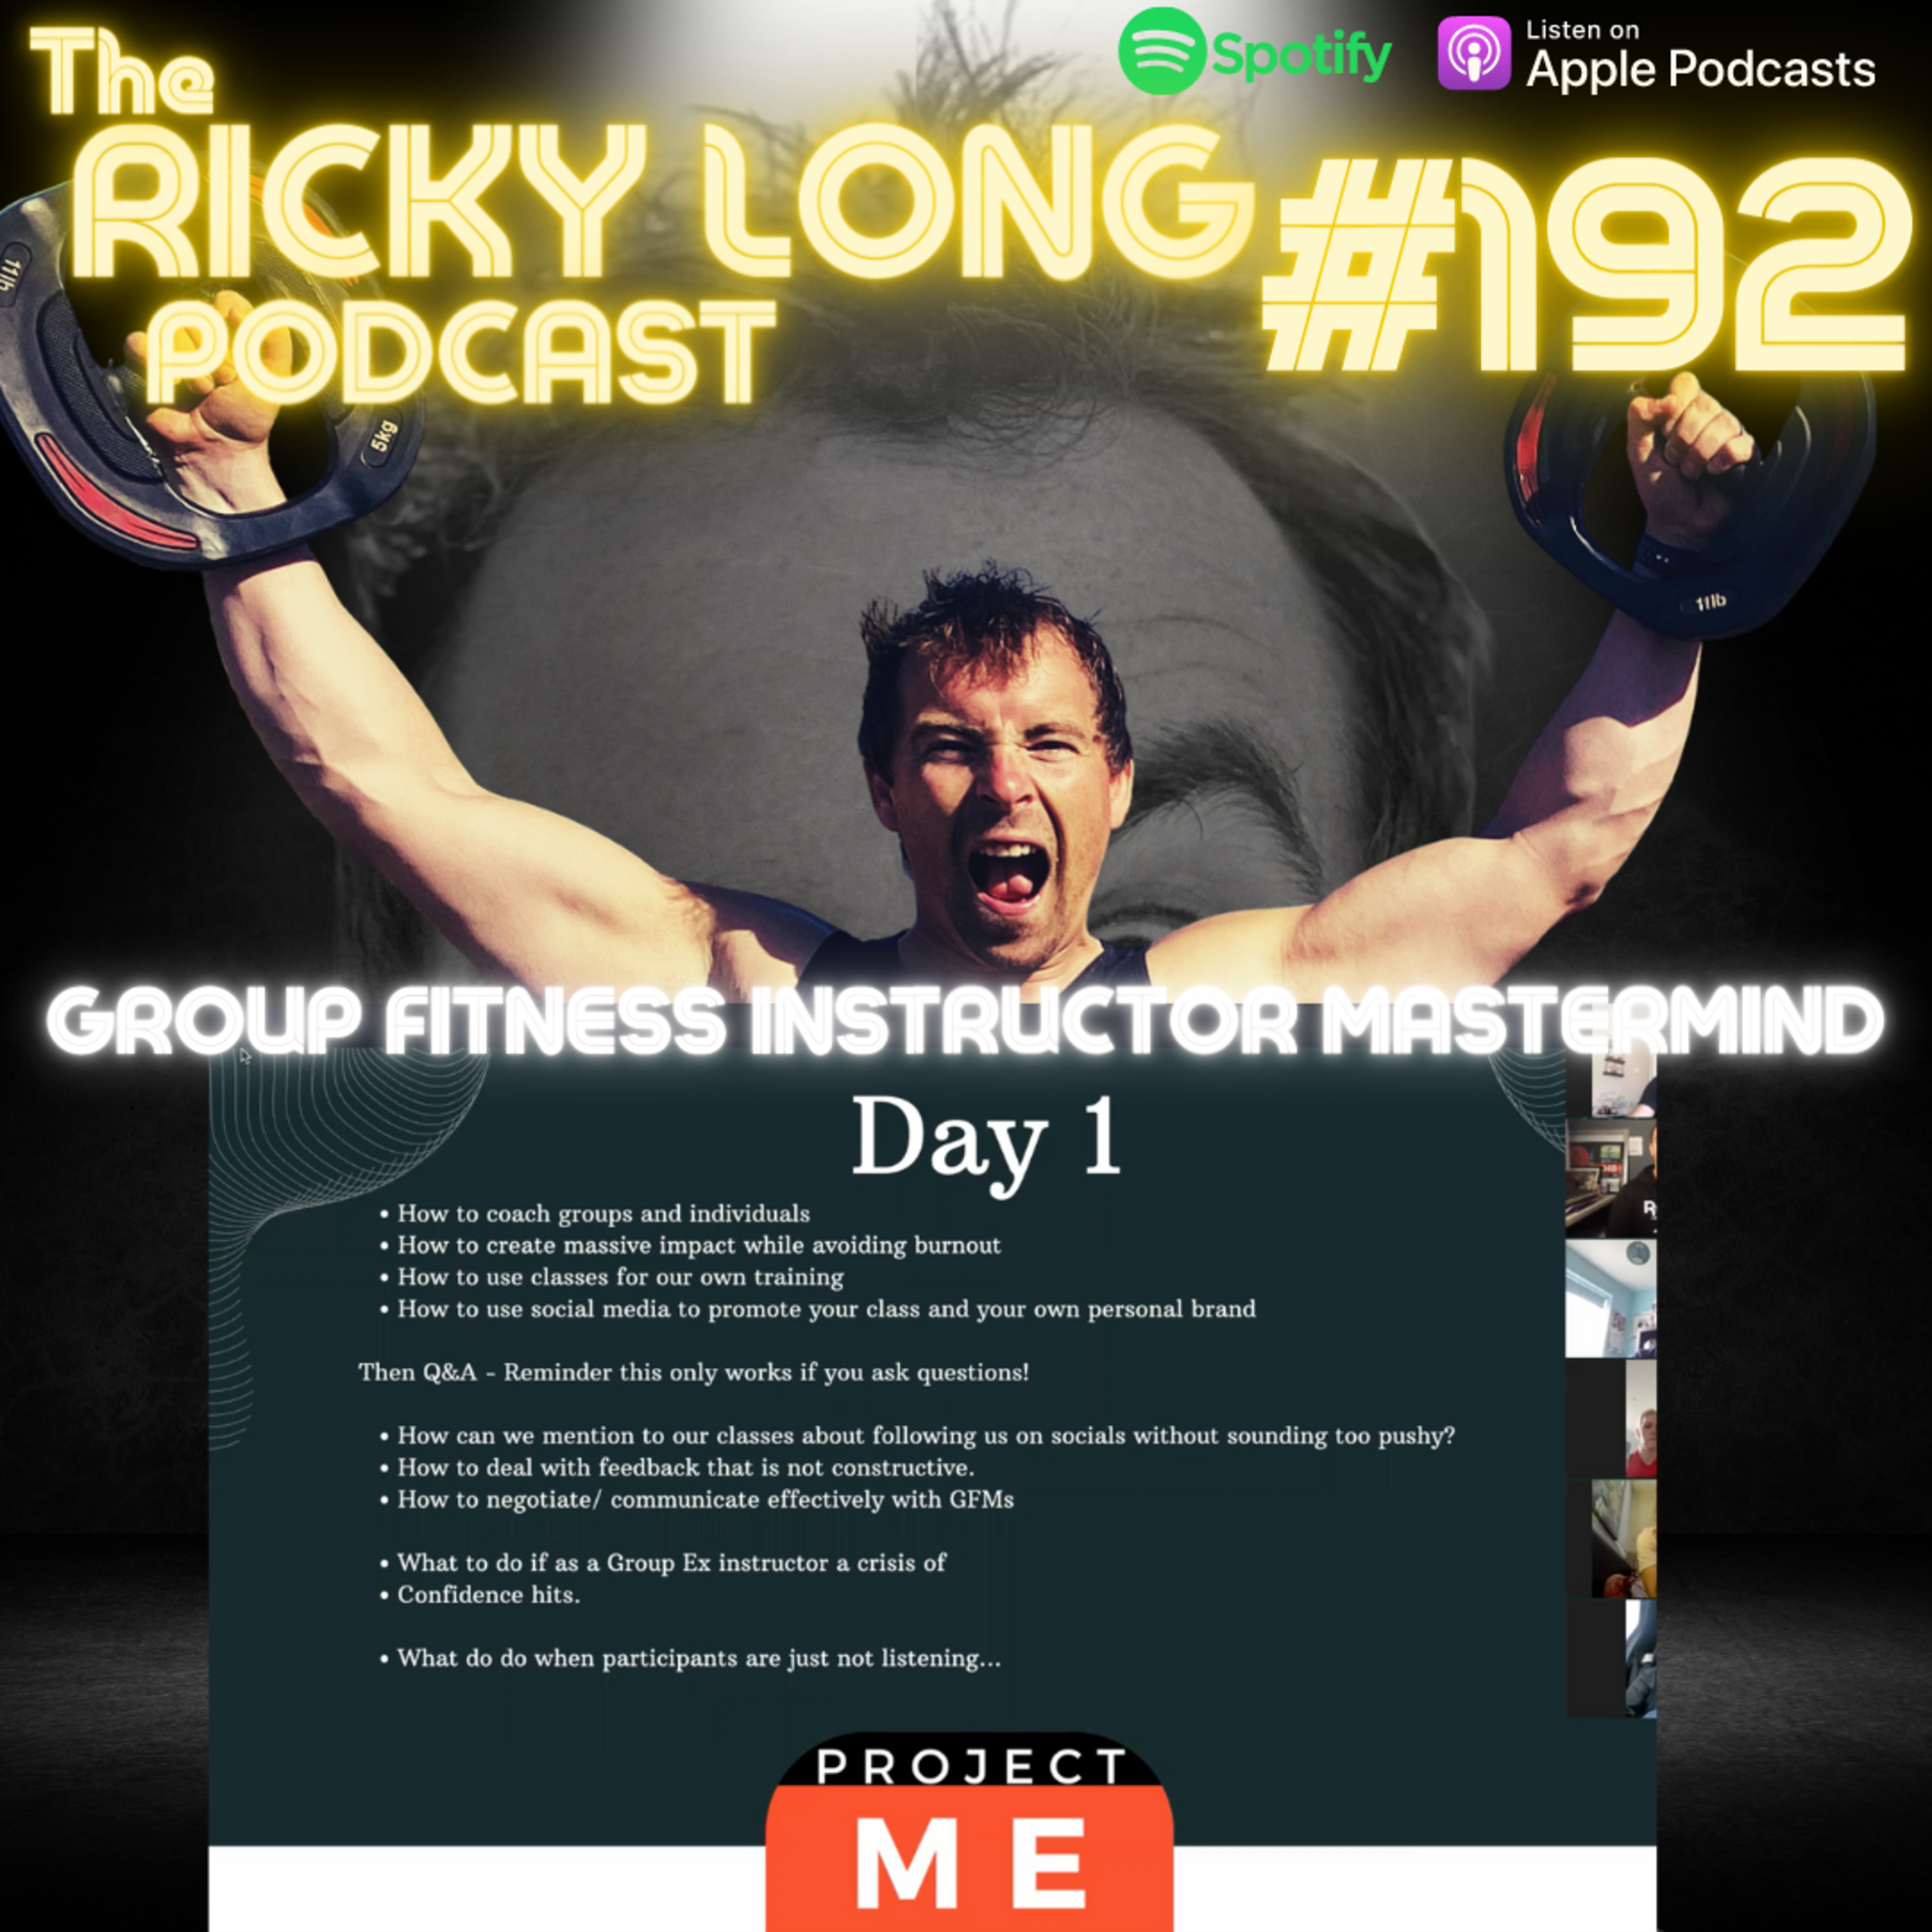 #192 - Group Fitness Mastermind